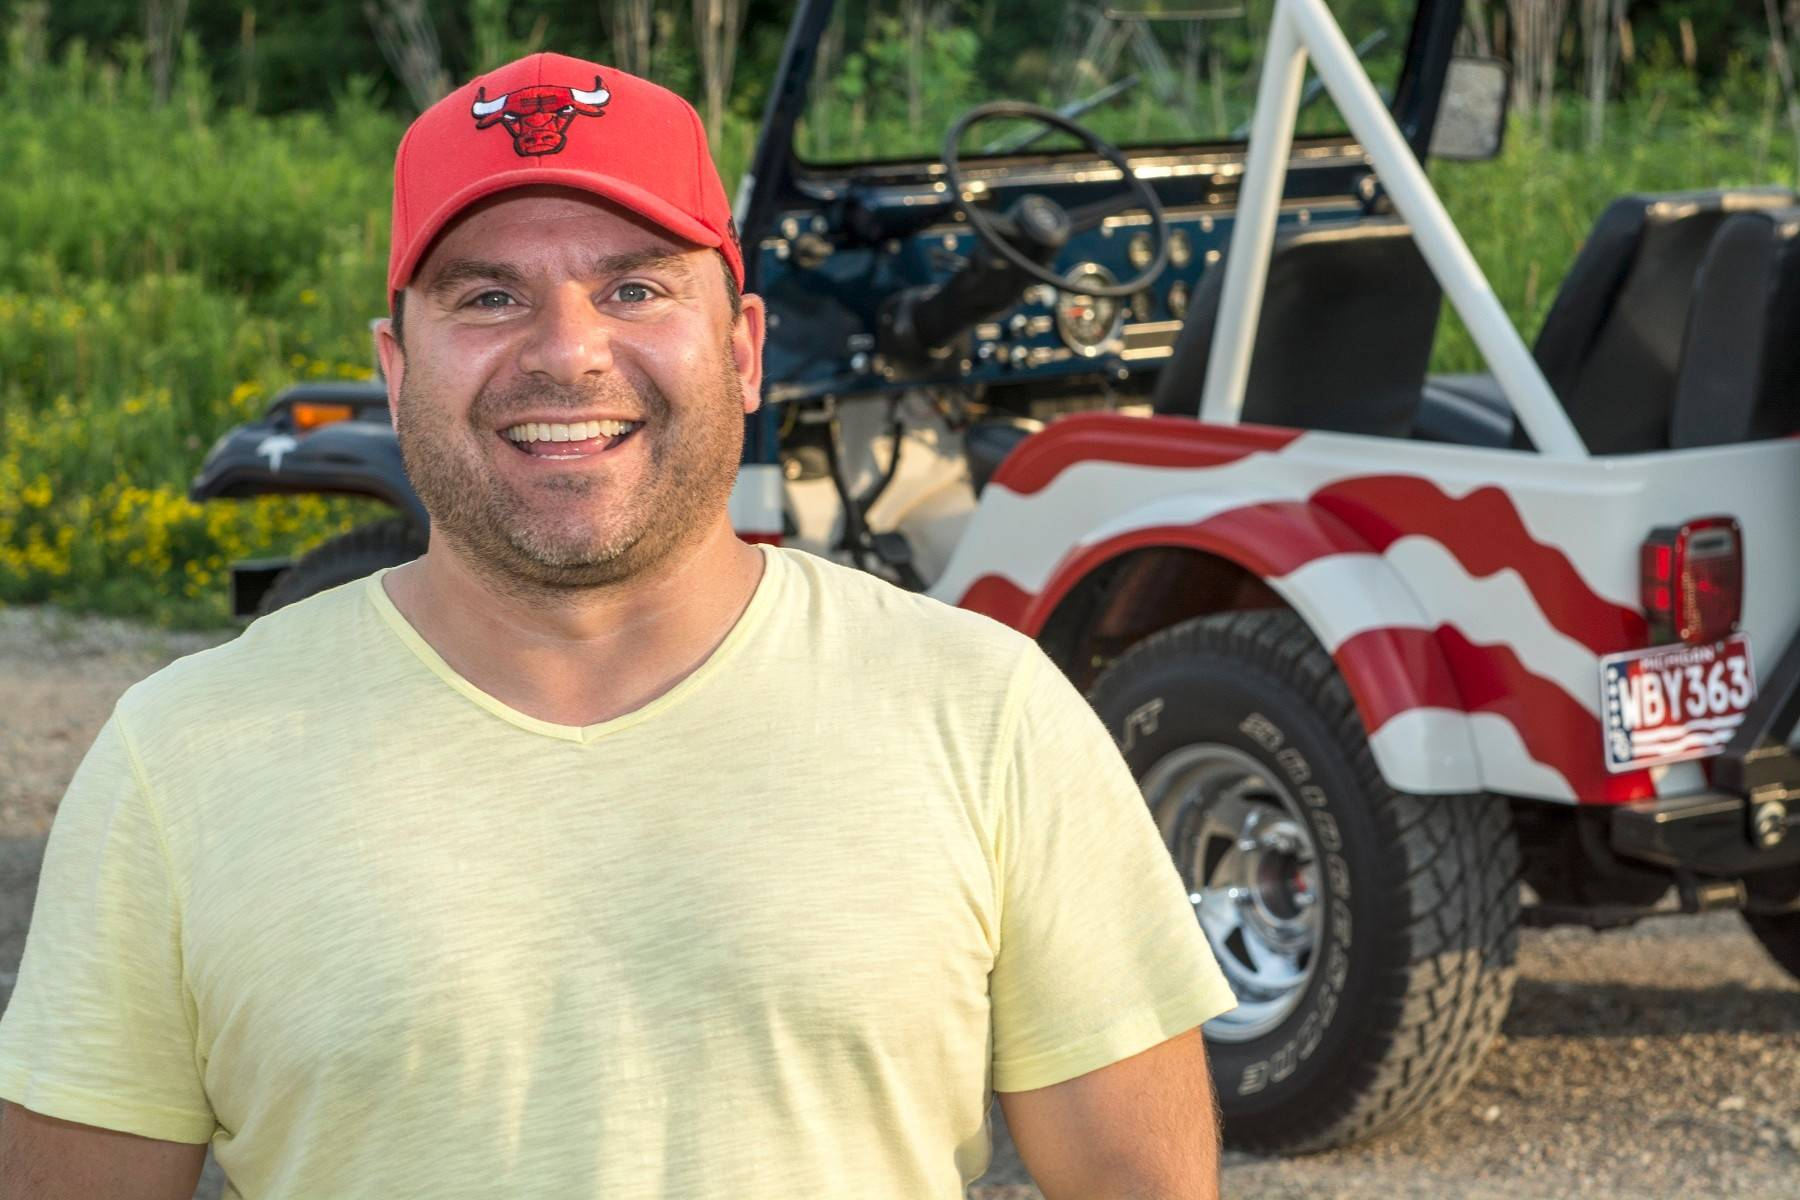 Nick Priola of Lake Bluff says he was extremely fortunate to be able to reunite two Jeeps tied to a significant national event.